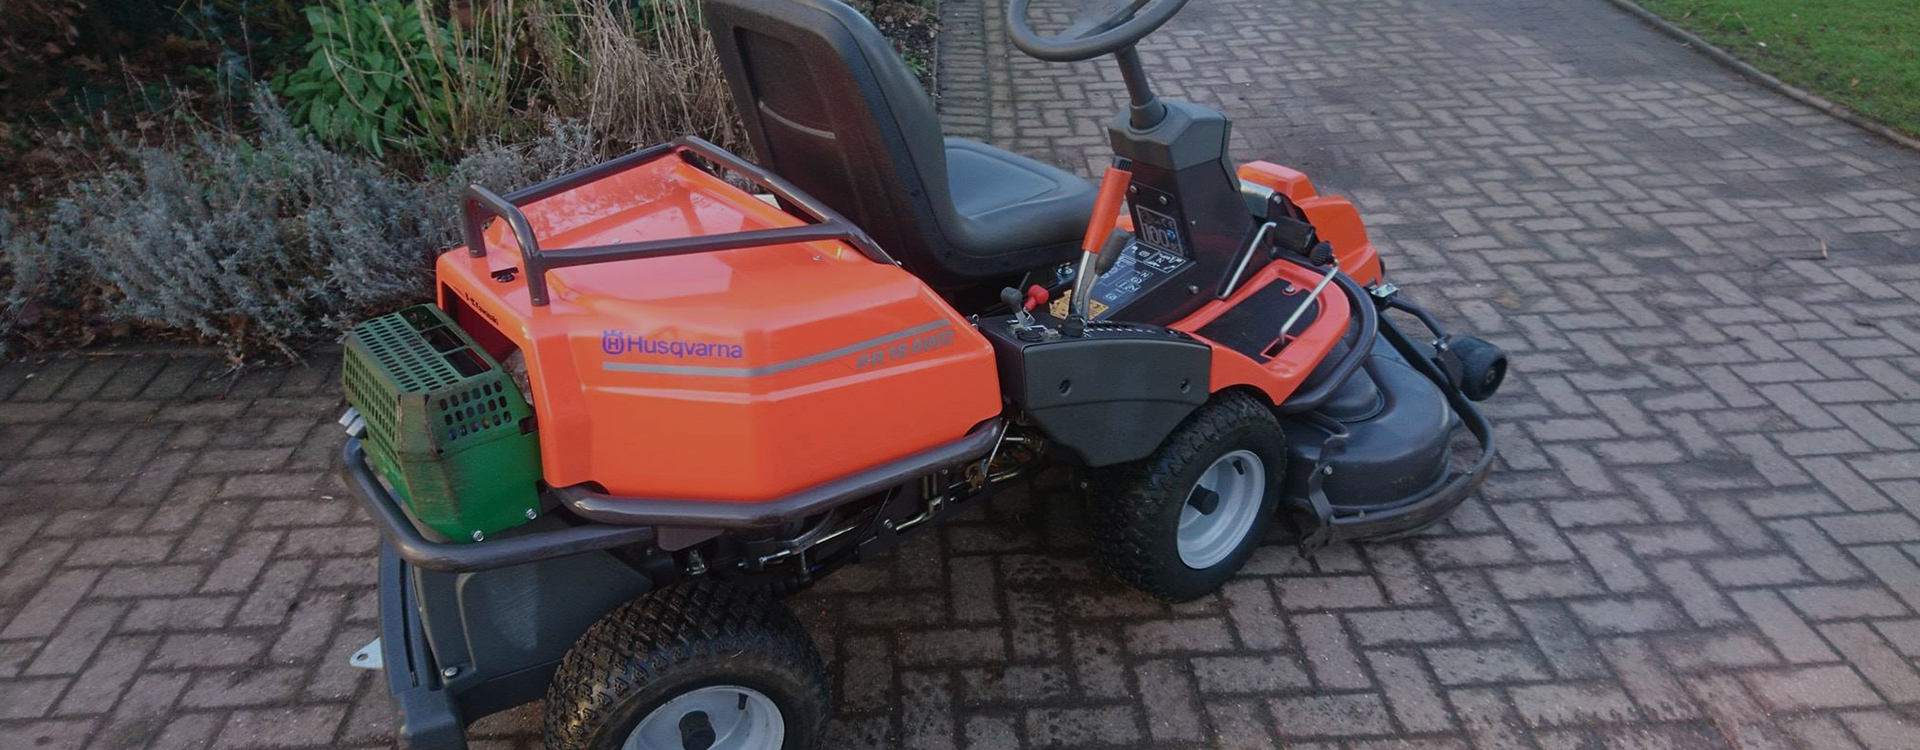 Hortus Servicing - Ride on Mowers - we keep your machinery working